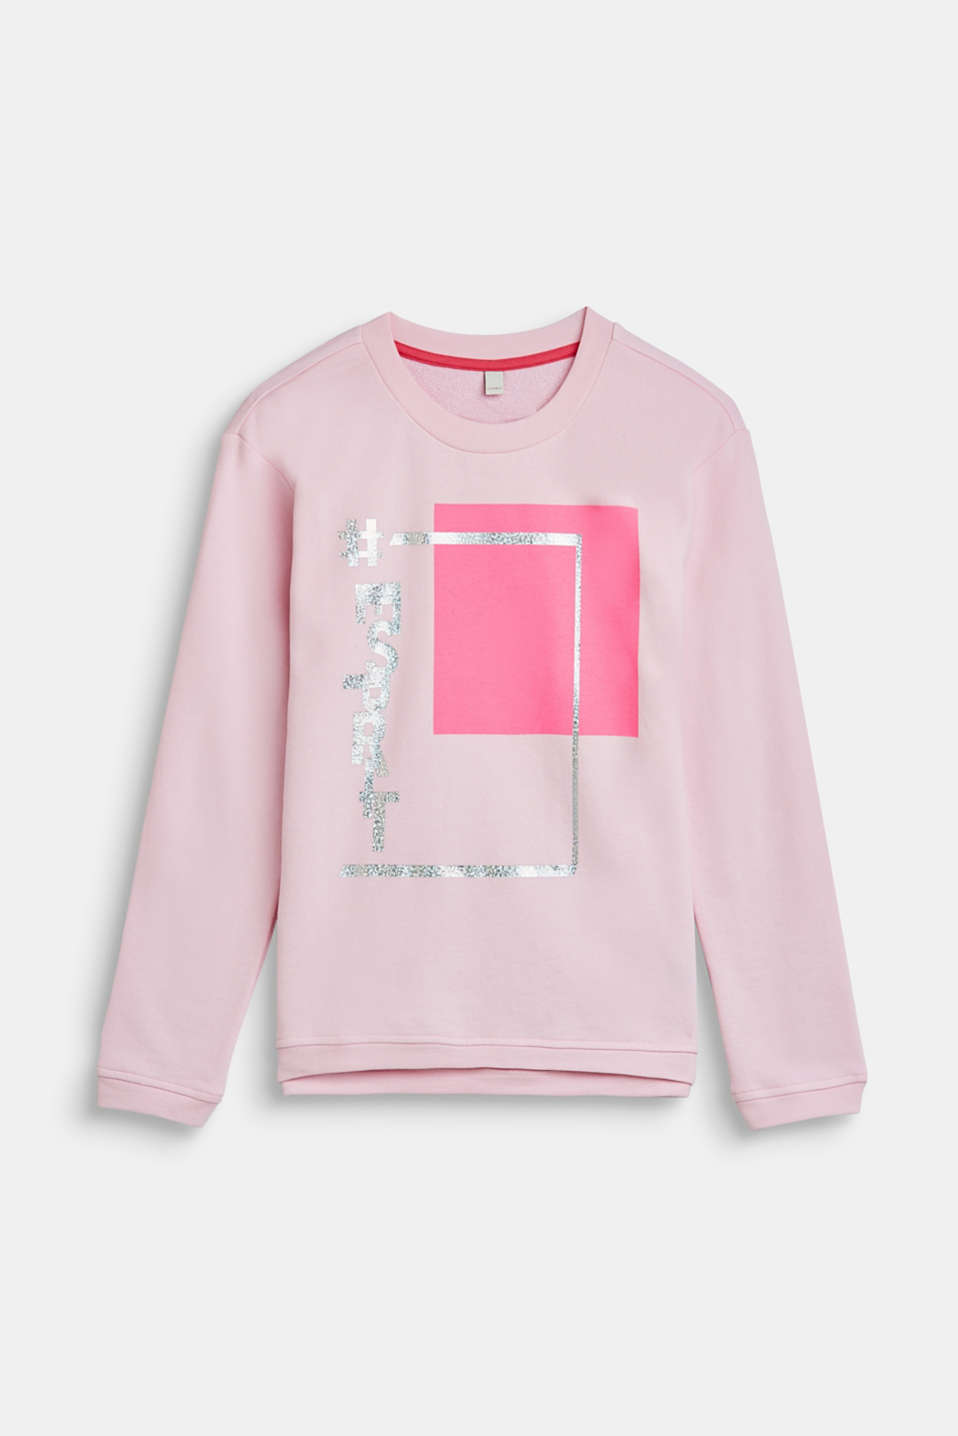 Esprit - Sweatshirt with a metallic print, 100% cotton